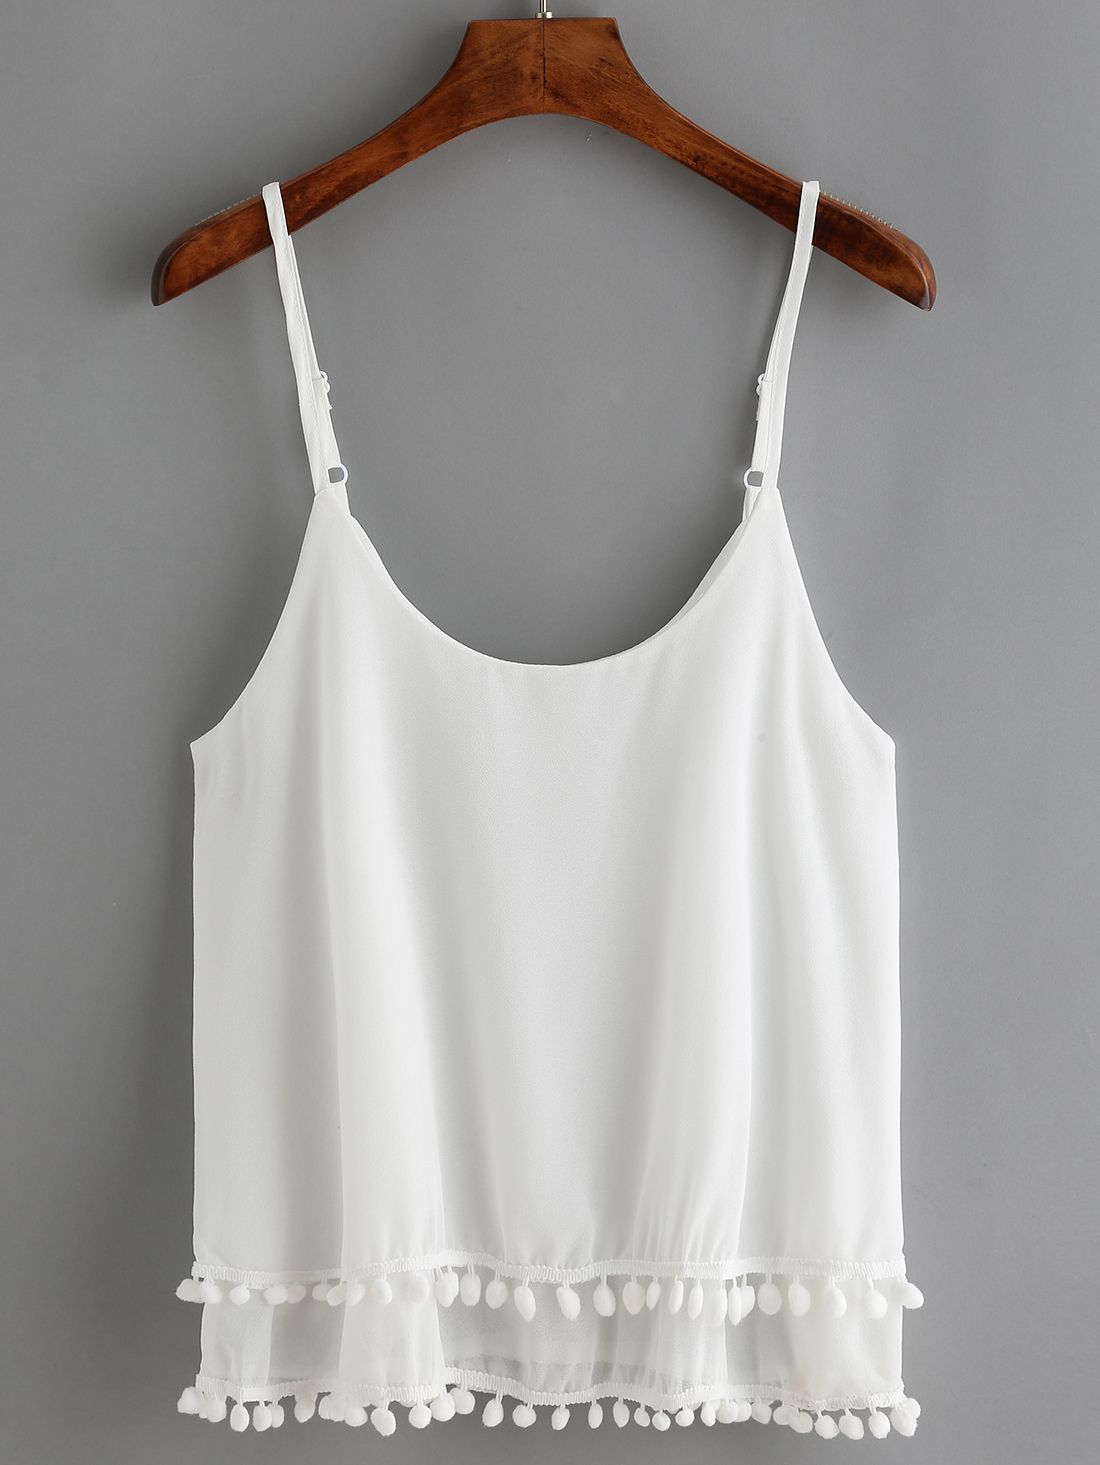 White Spaghetti Strap Tassel Cami Top -SheIn | :: >> Just Landed ...